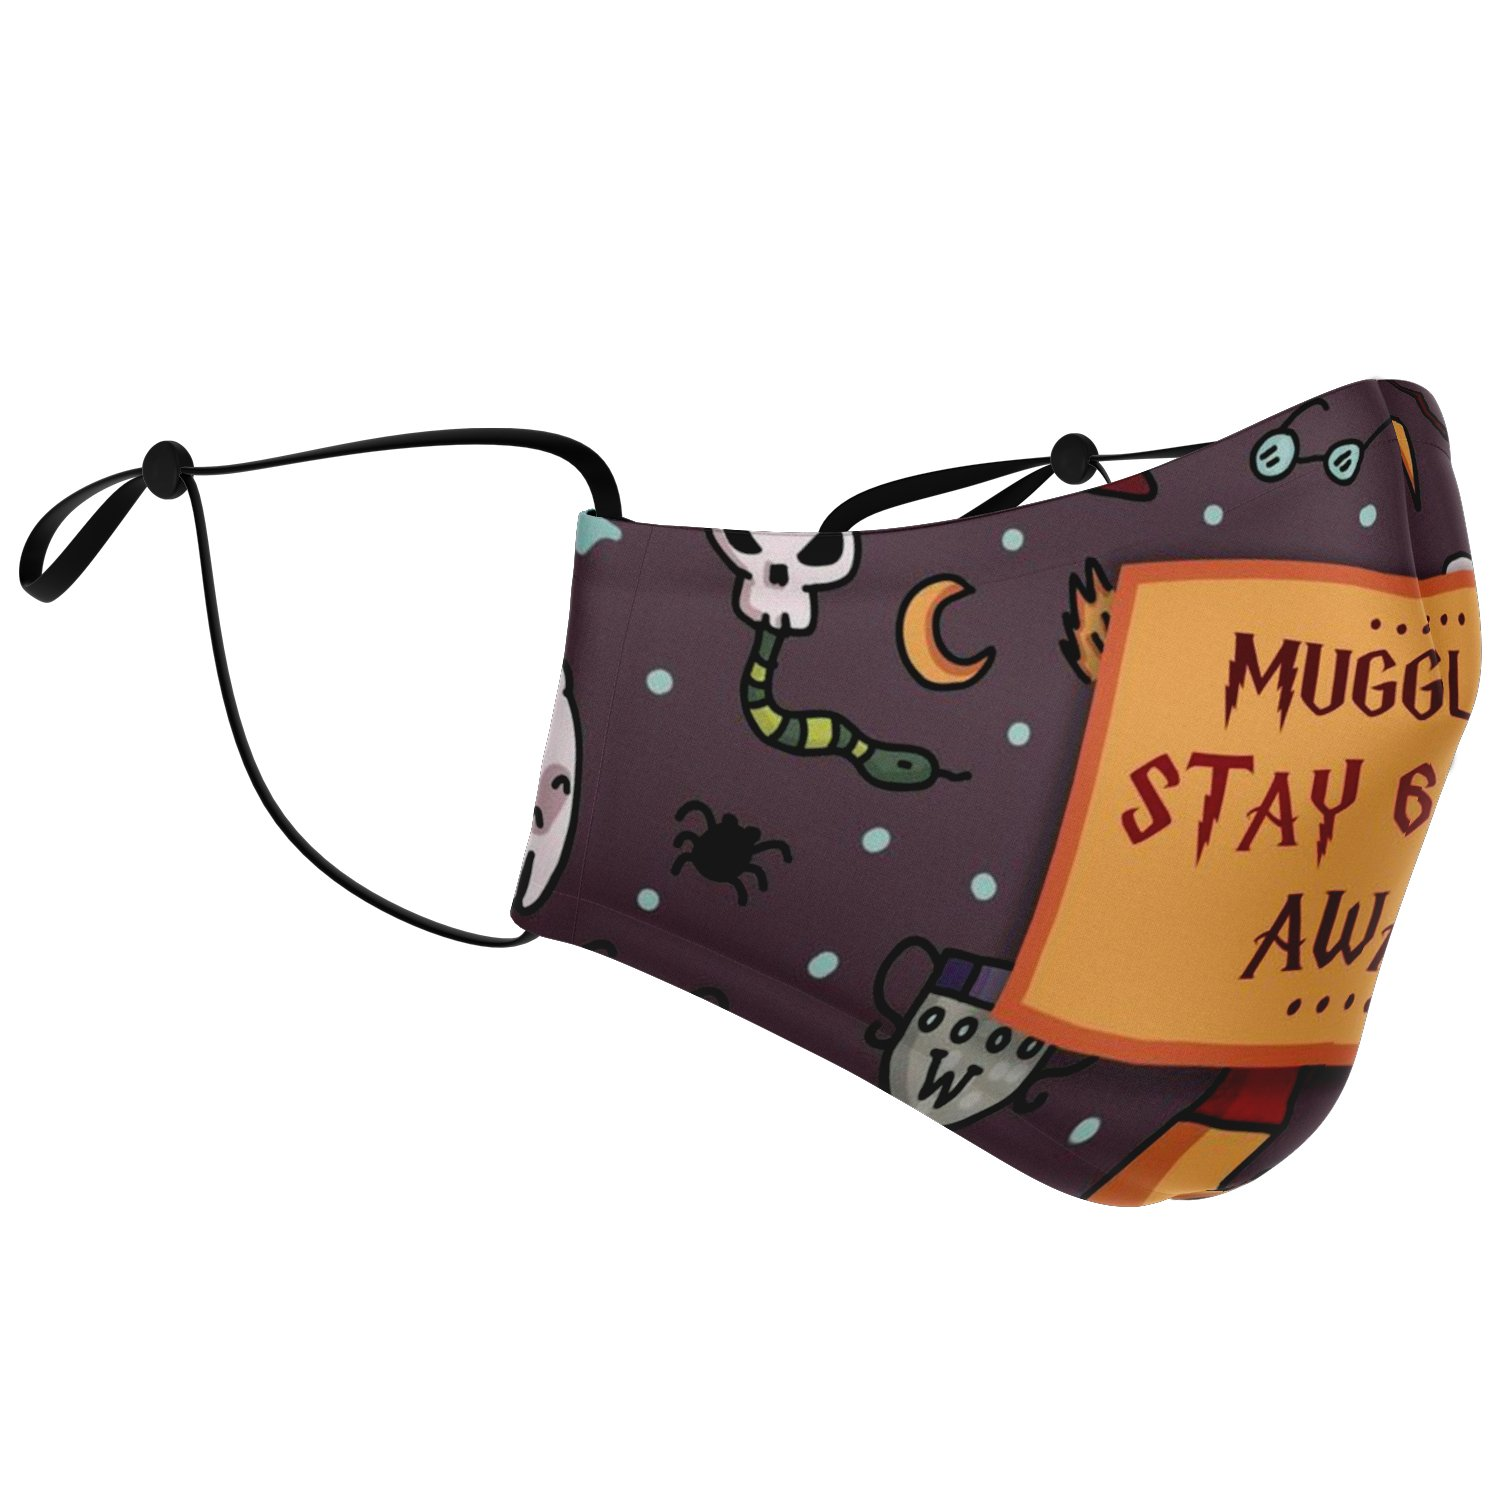 Muggles Stay 6 Feet Away Harry Potter Face Mask 2